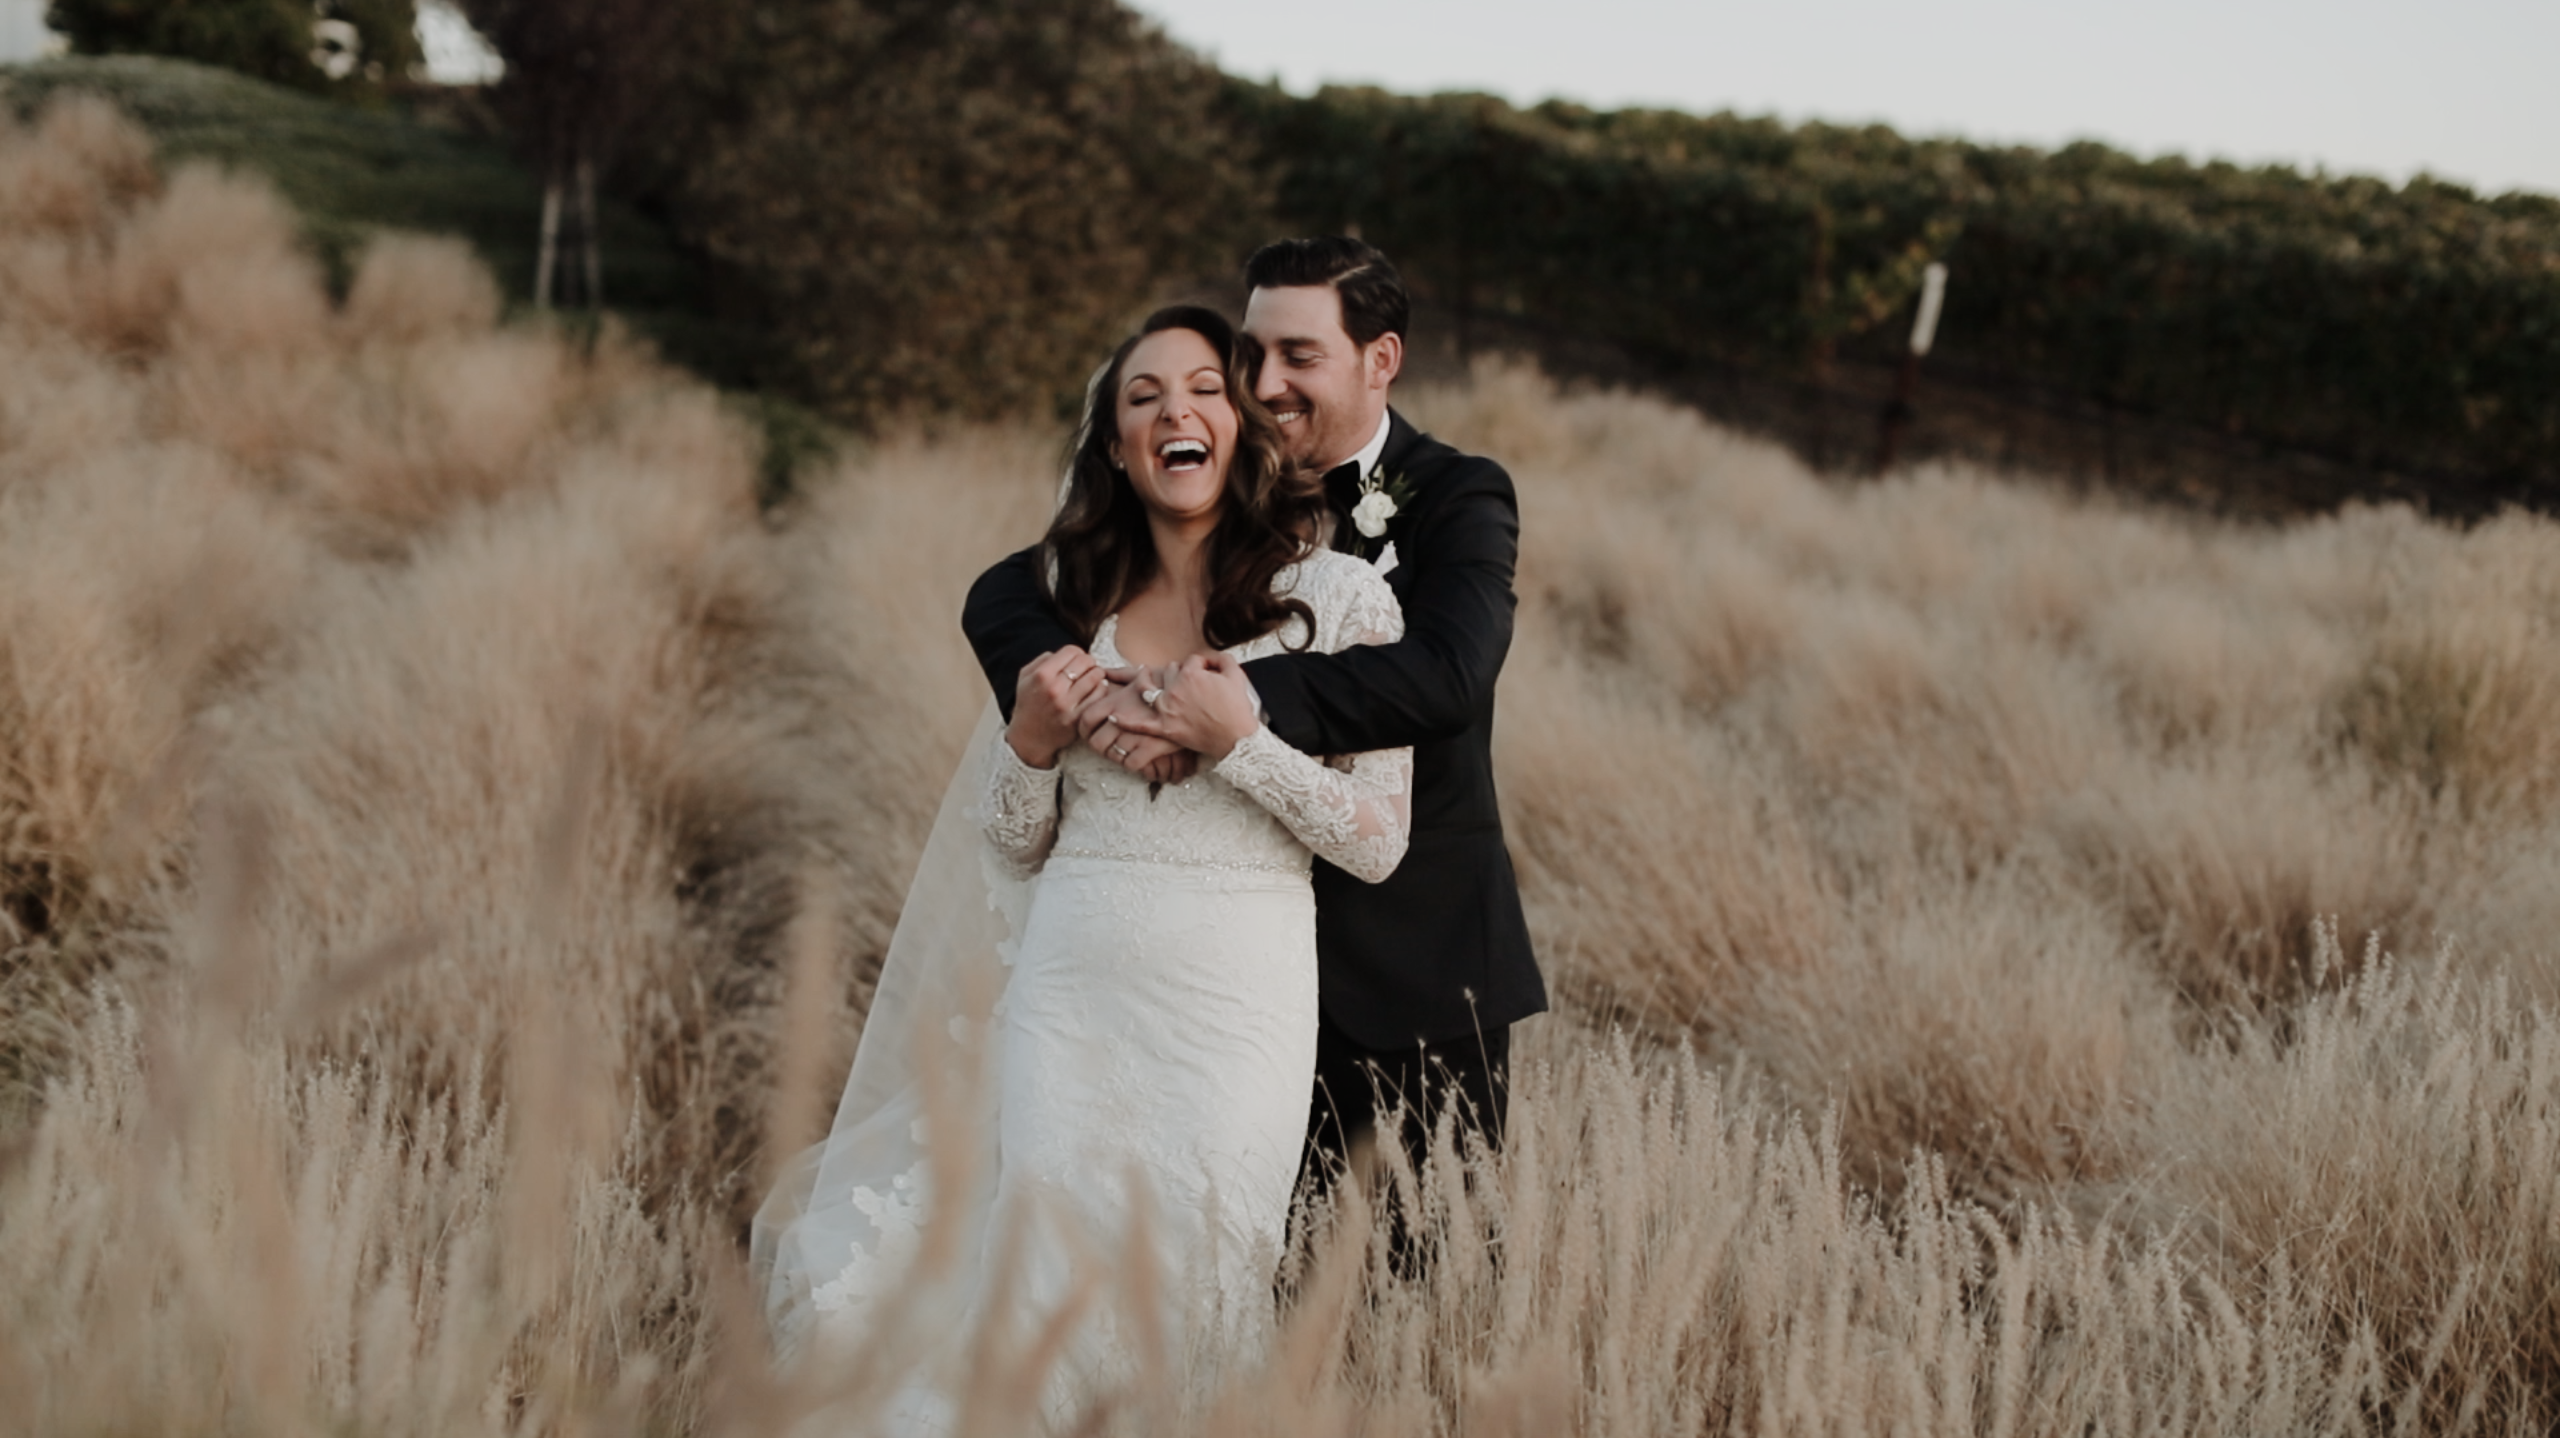 Kelsey + Alan | San Luis Obispo, California | Greengate Ranch